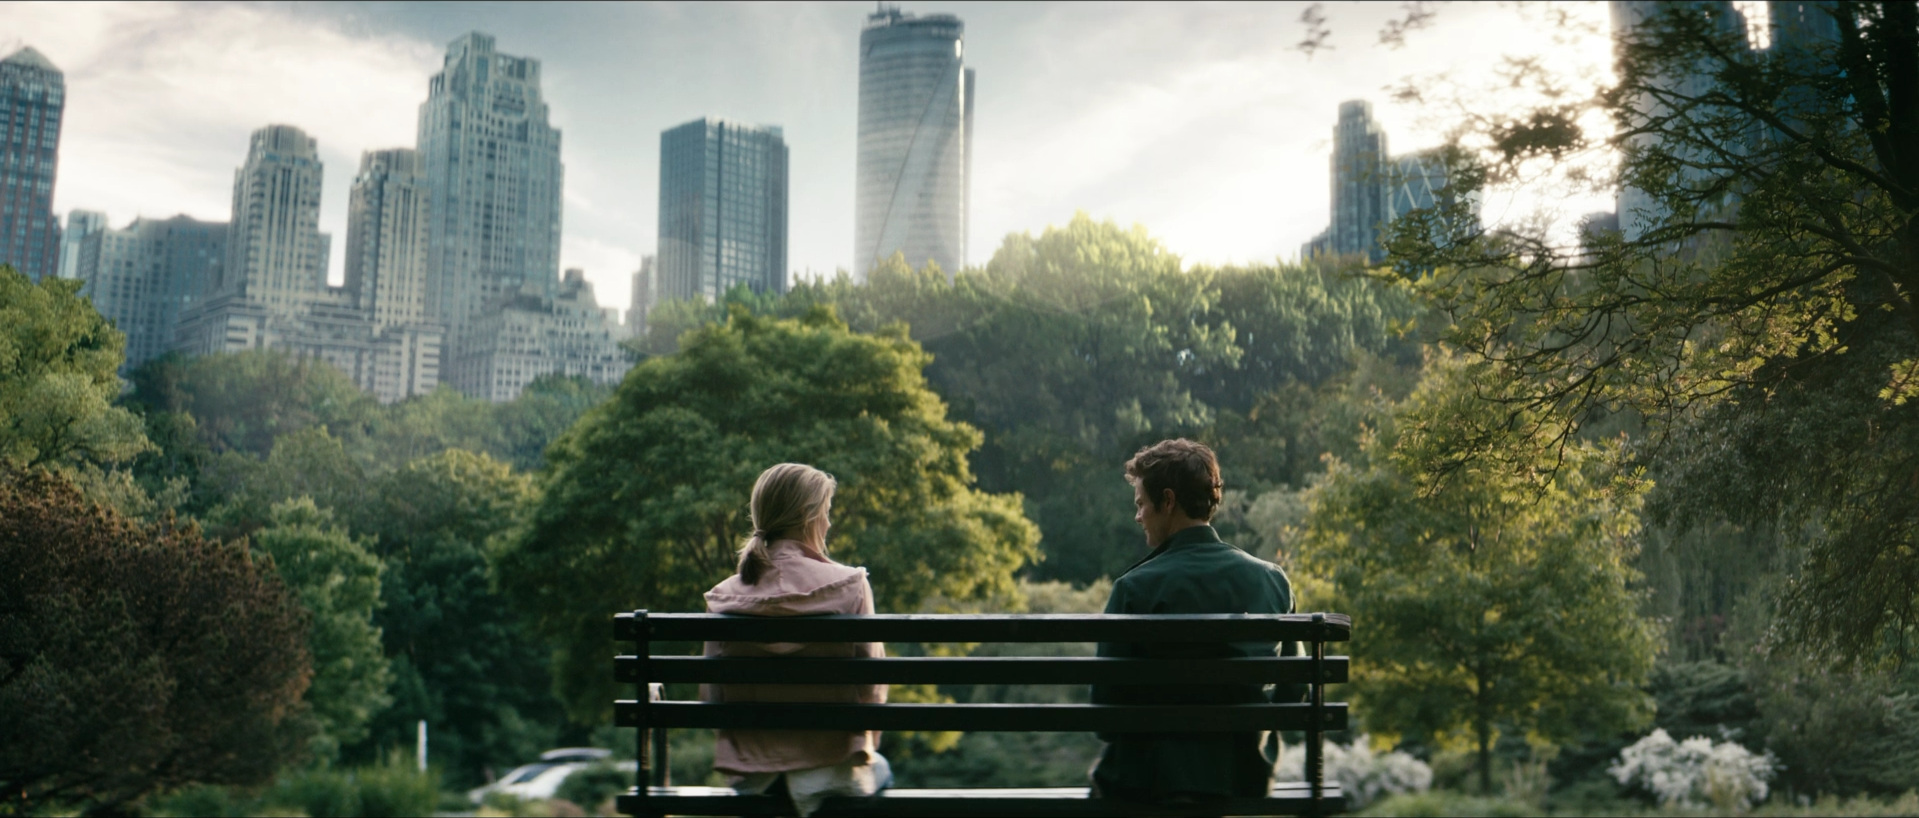 The Boys  s01e01 (Amazon, 2019), The Seven Tower, seen from Central Park